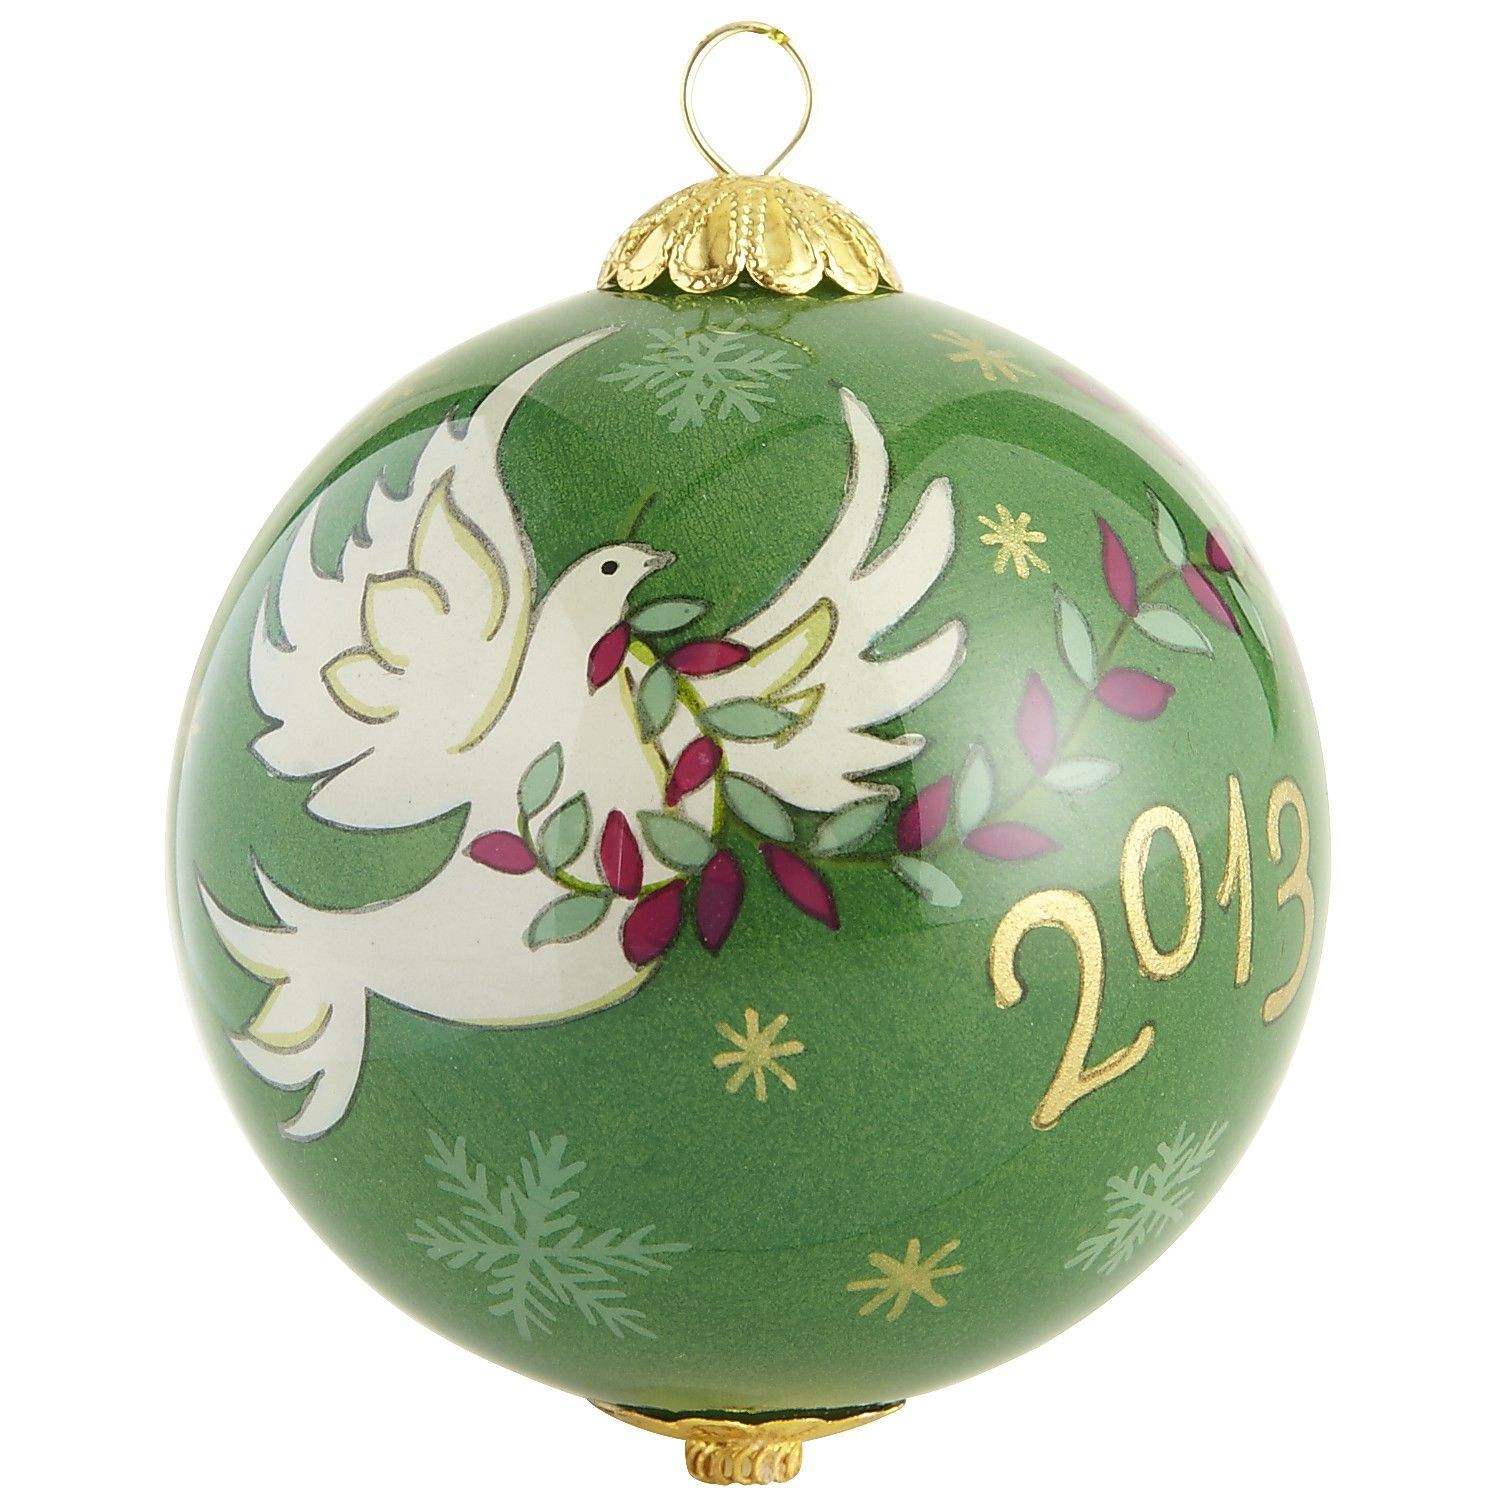 Li Bien Dove Ornament (With images) | Glass ornaments ...